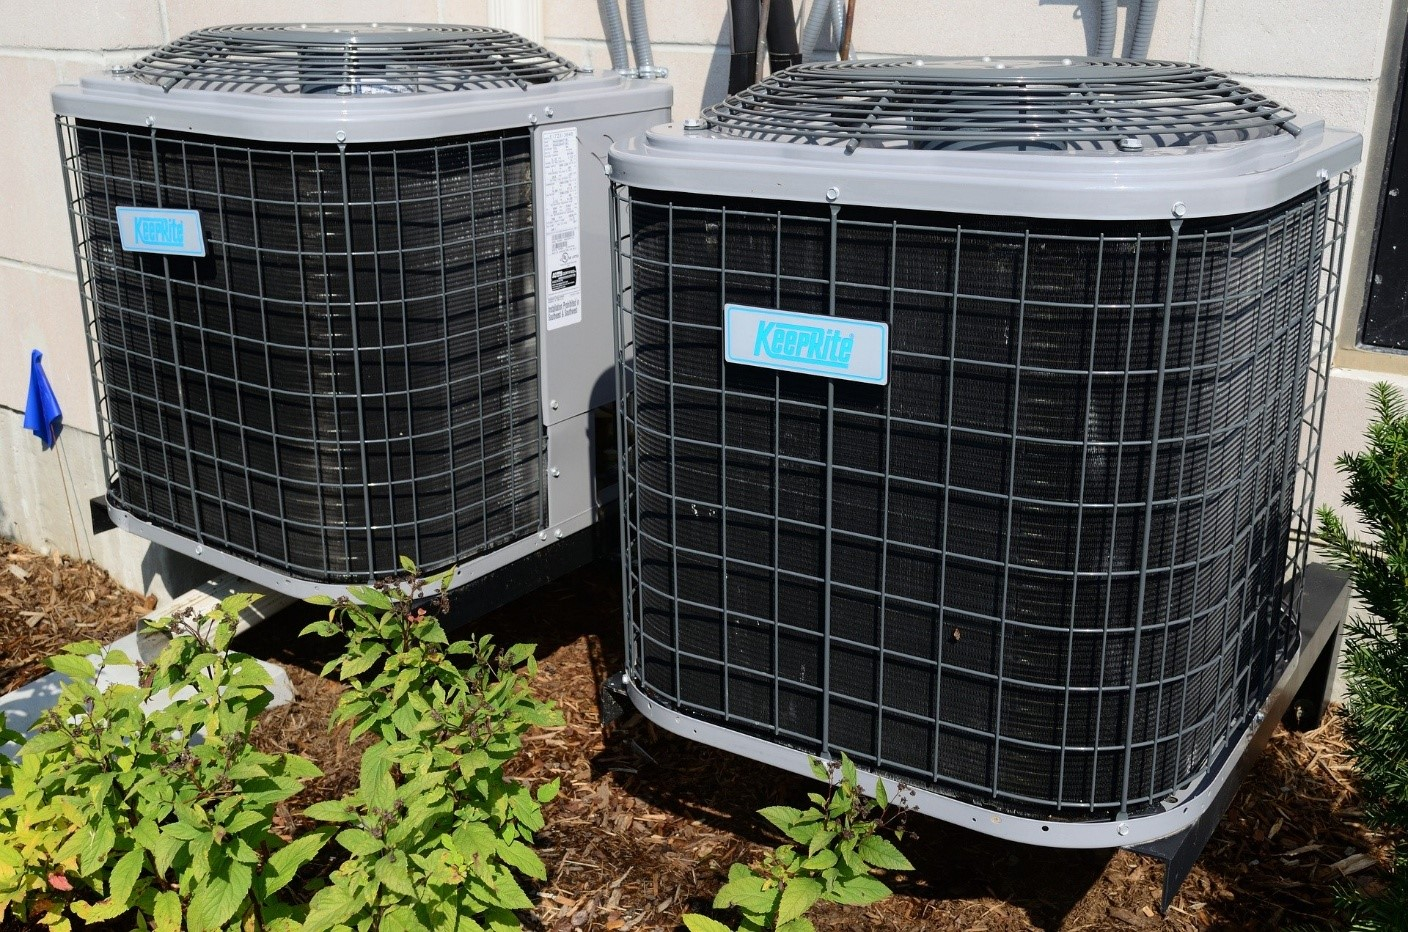 Reasons to Find Air Conditioning Installers - AC Installation Pro Tips